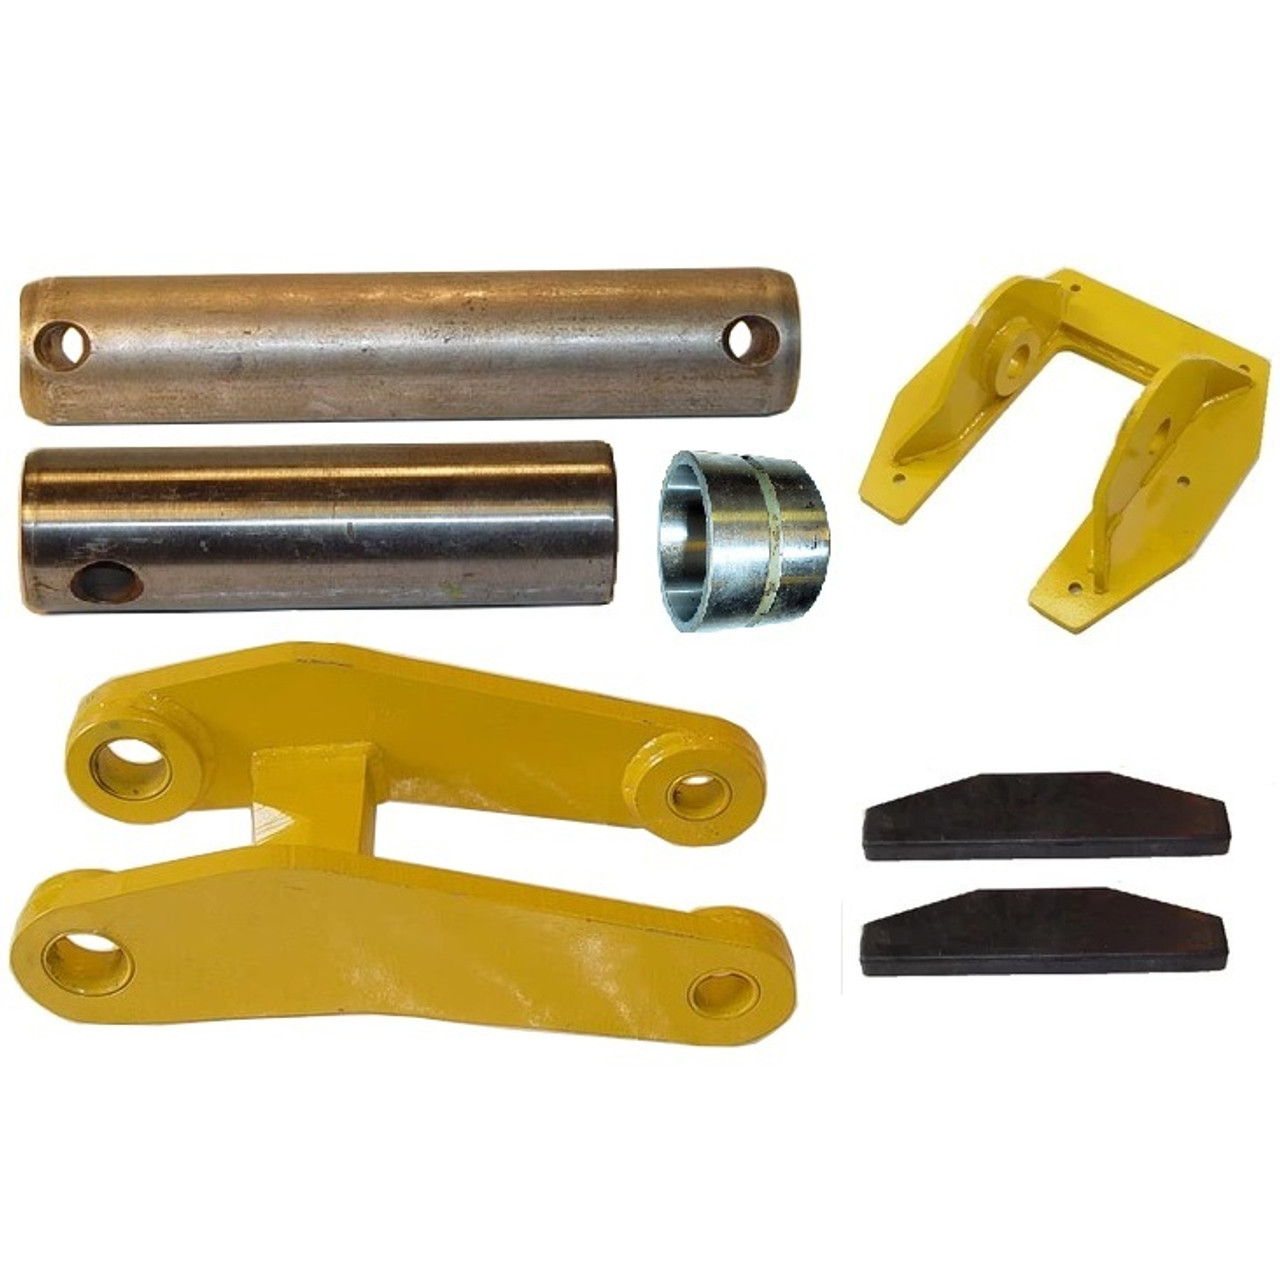 Pins, Bushings, and Related Parts